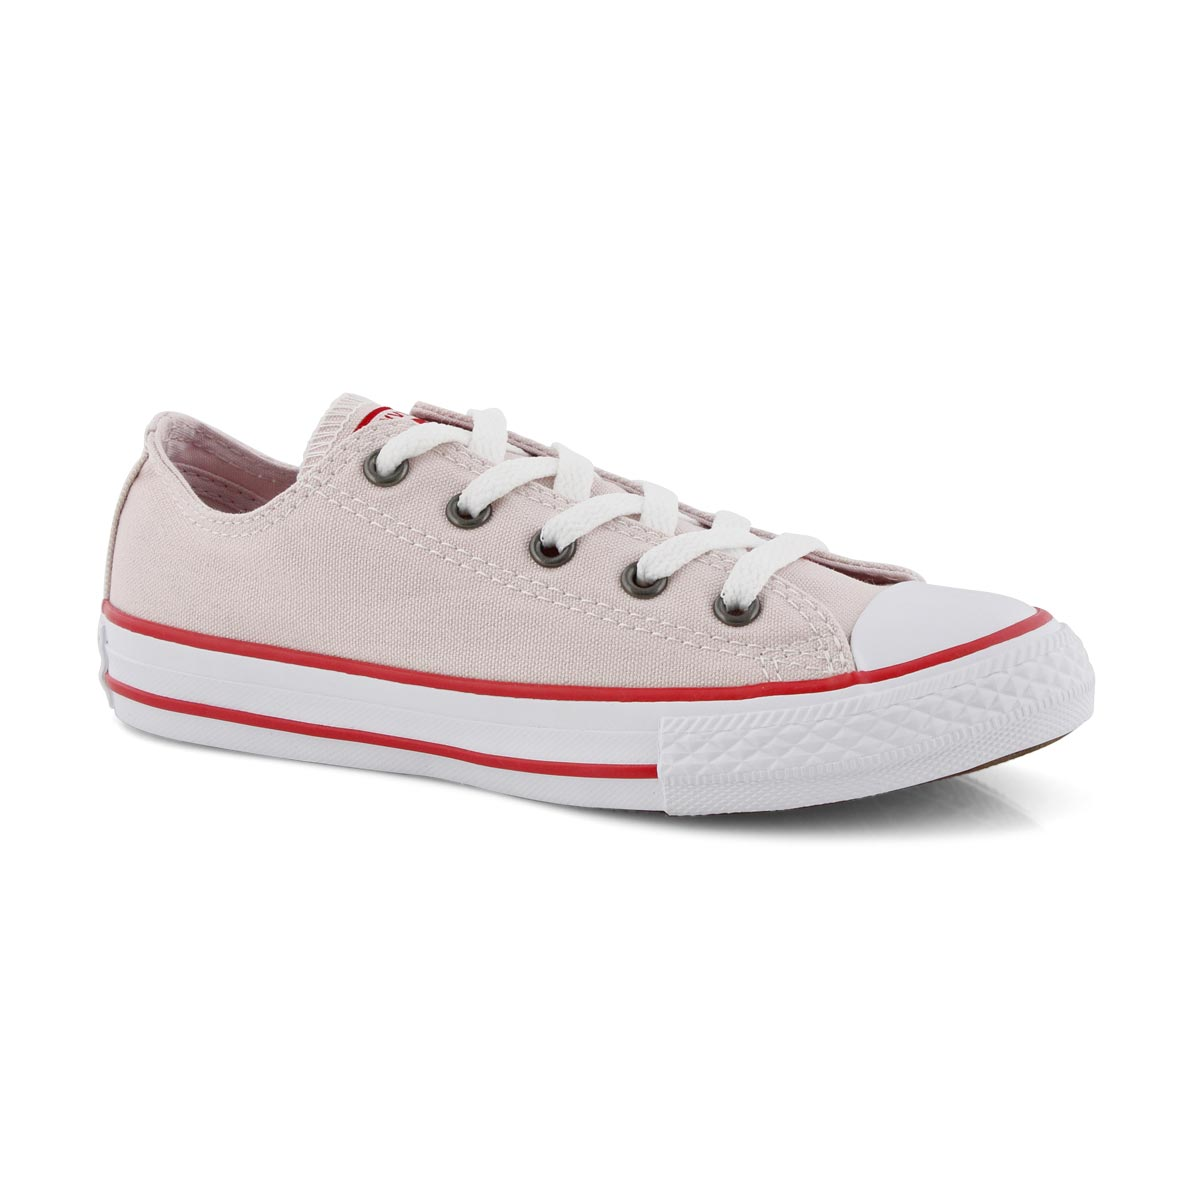 Grls CTAS Seasonal rose/red/wht sneaker